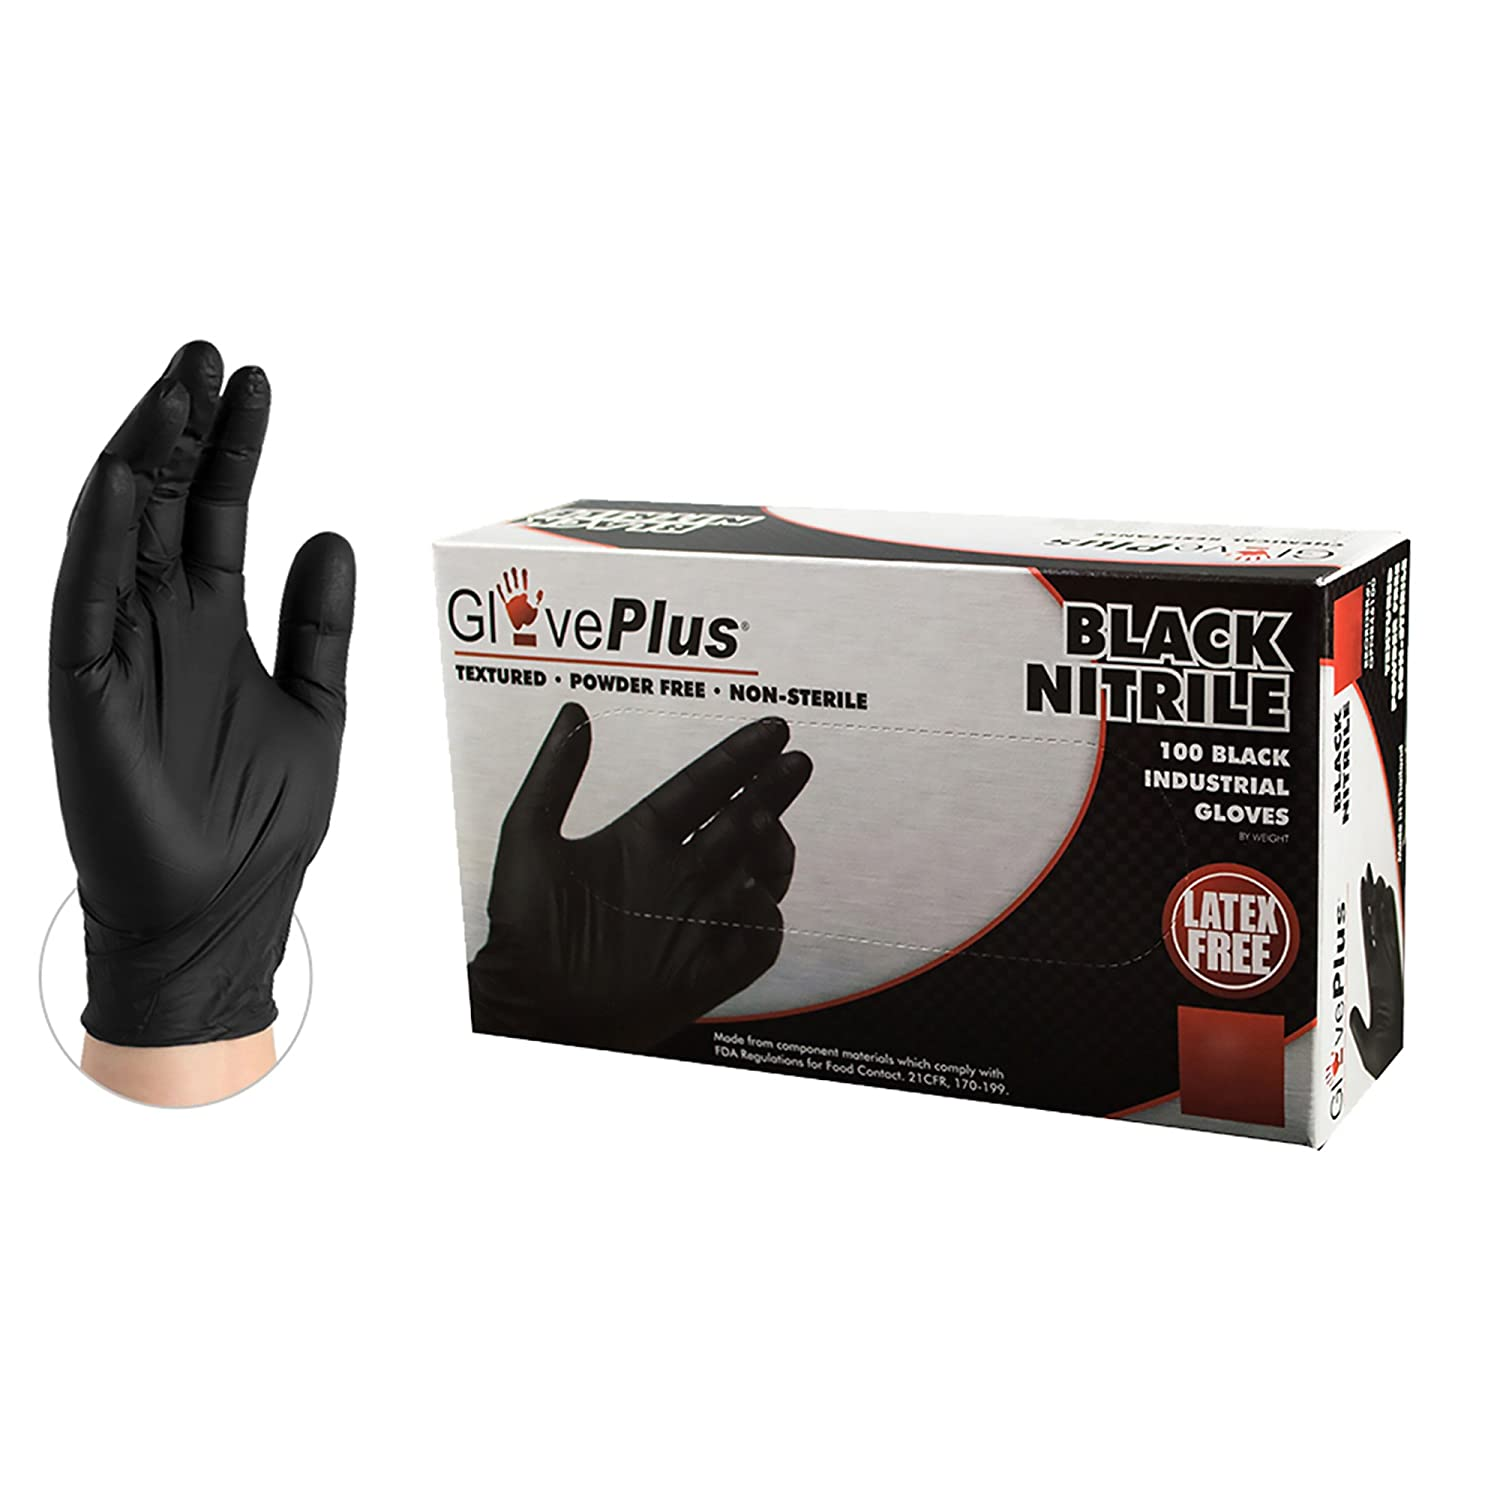 Gloves (100-Count) - BLACK